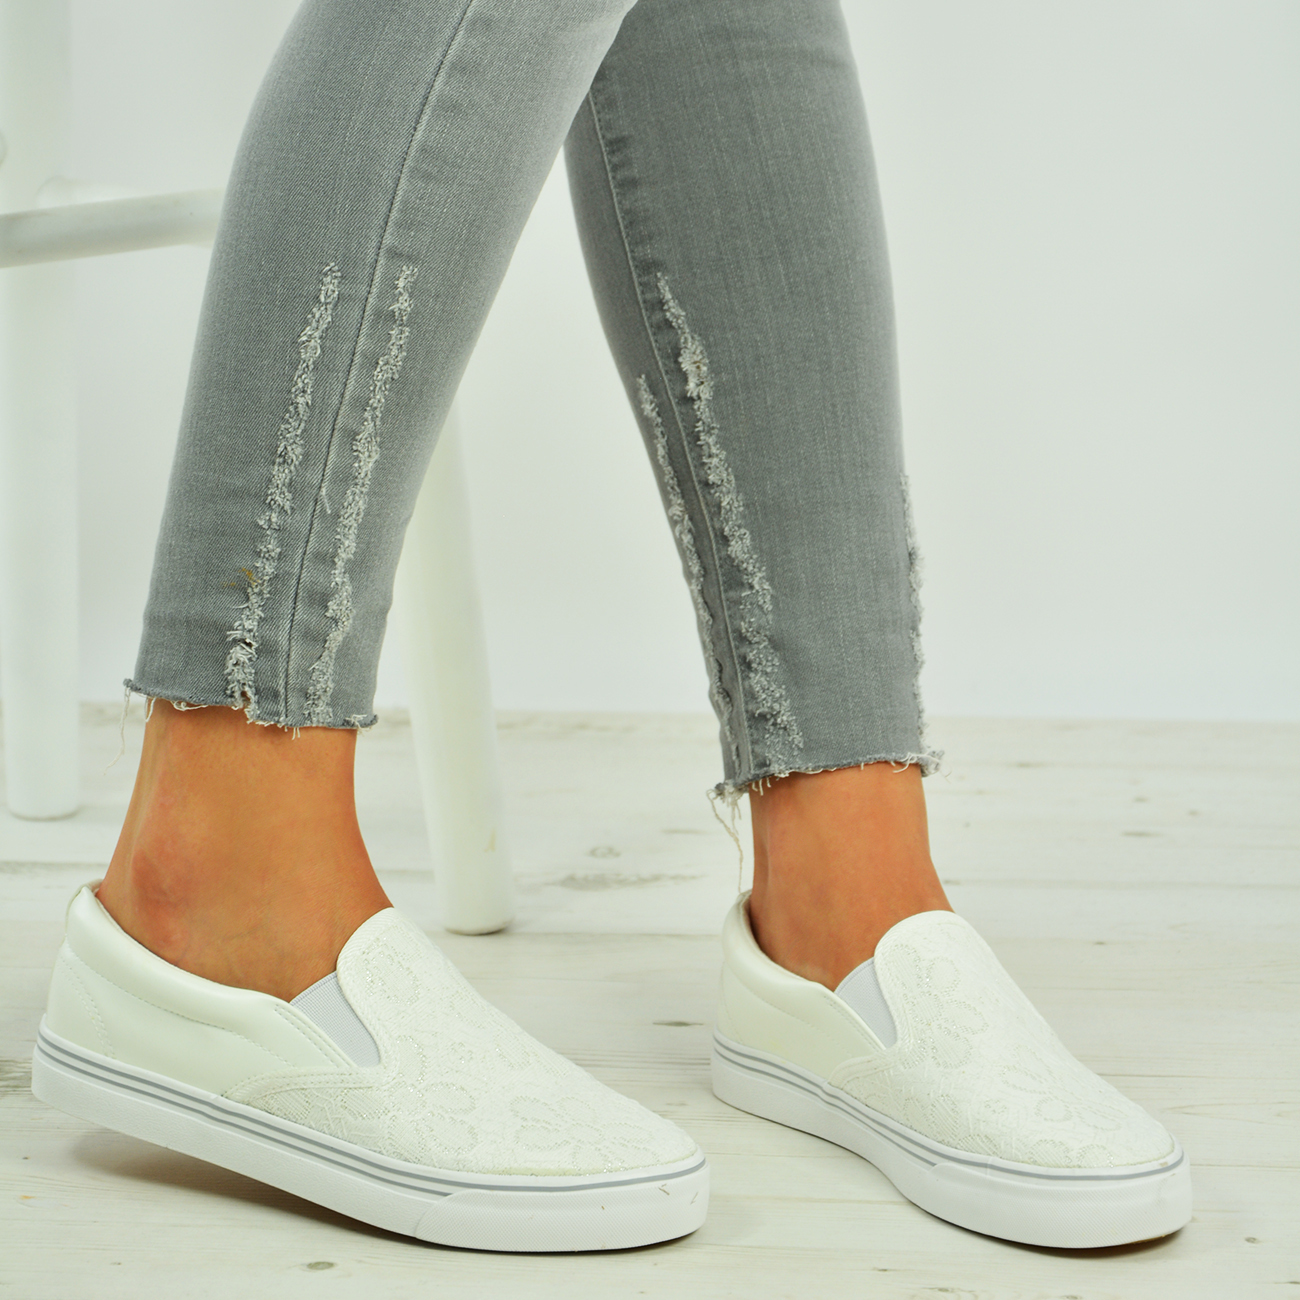 new womens slip on plimsolls lace floral sneakers trainers